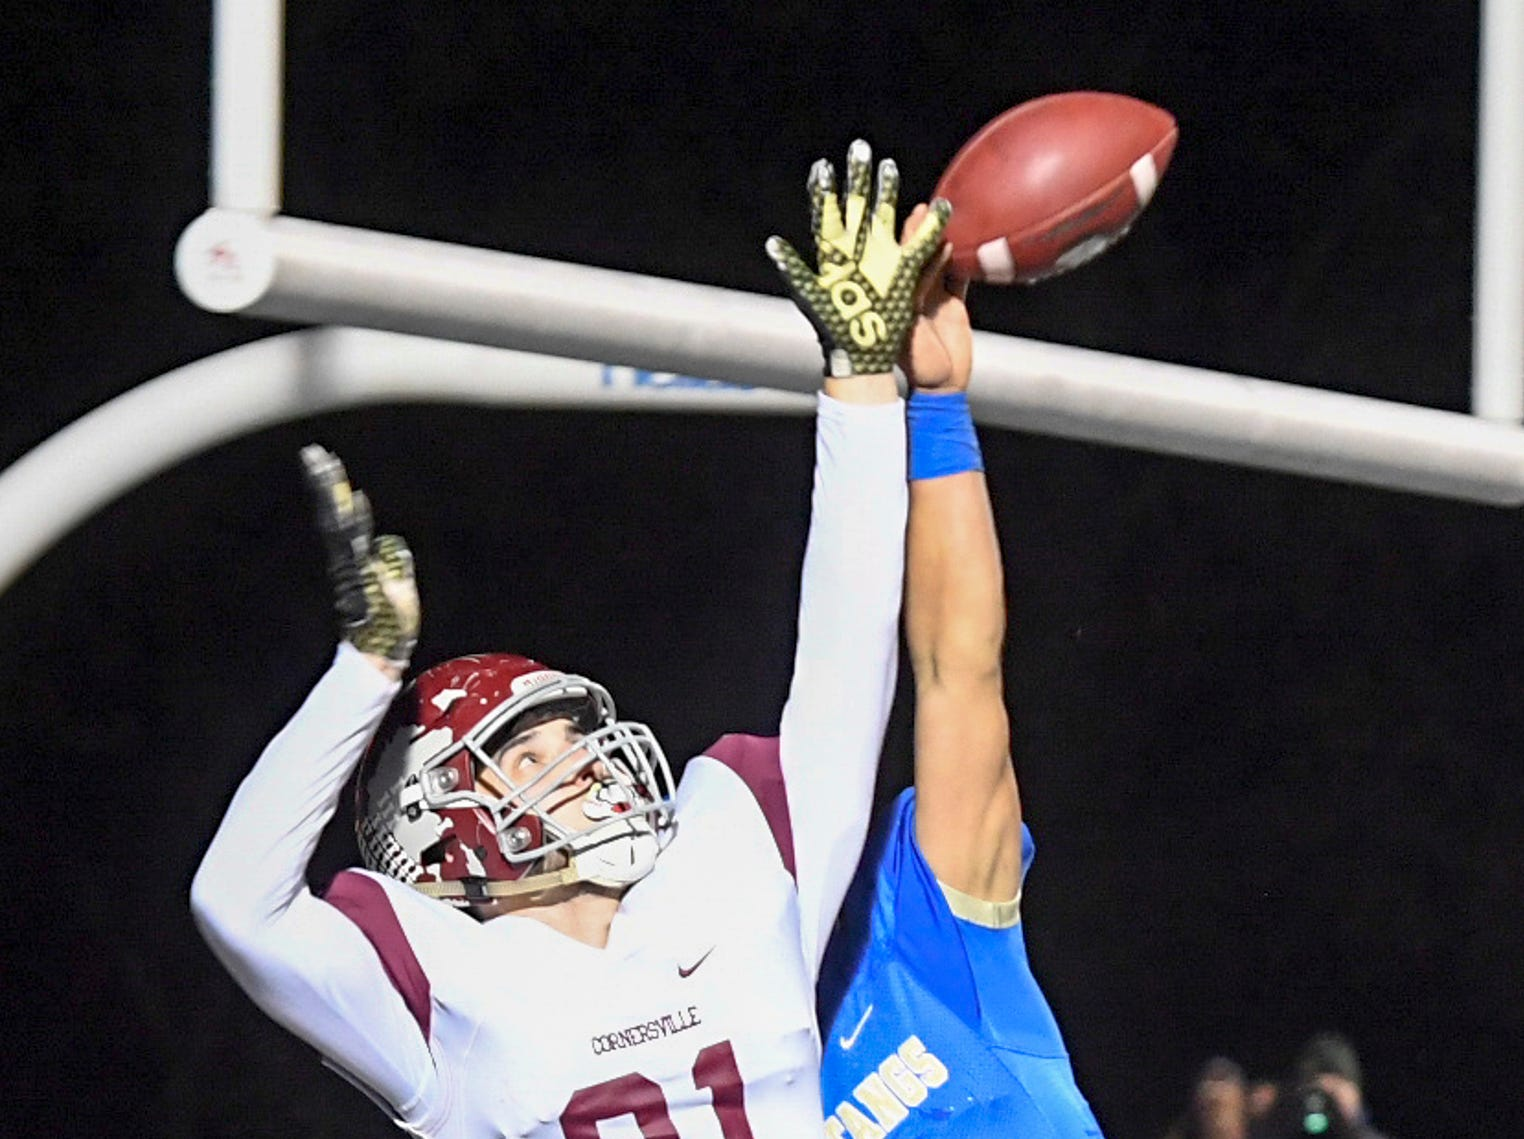 Huntingdon's Hunter Ensley deflects a pass intended for Cornersville's Peyton Finch during their TSSAA Class A quarter final game, Friday, November 16. Huntingdon fell to Cornersville, 13-7.